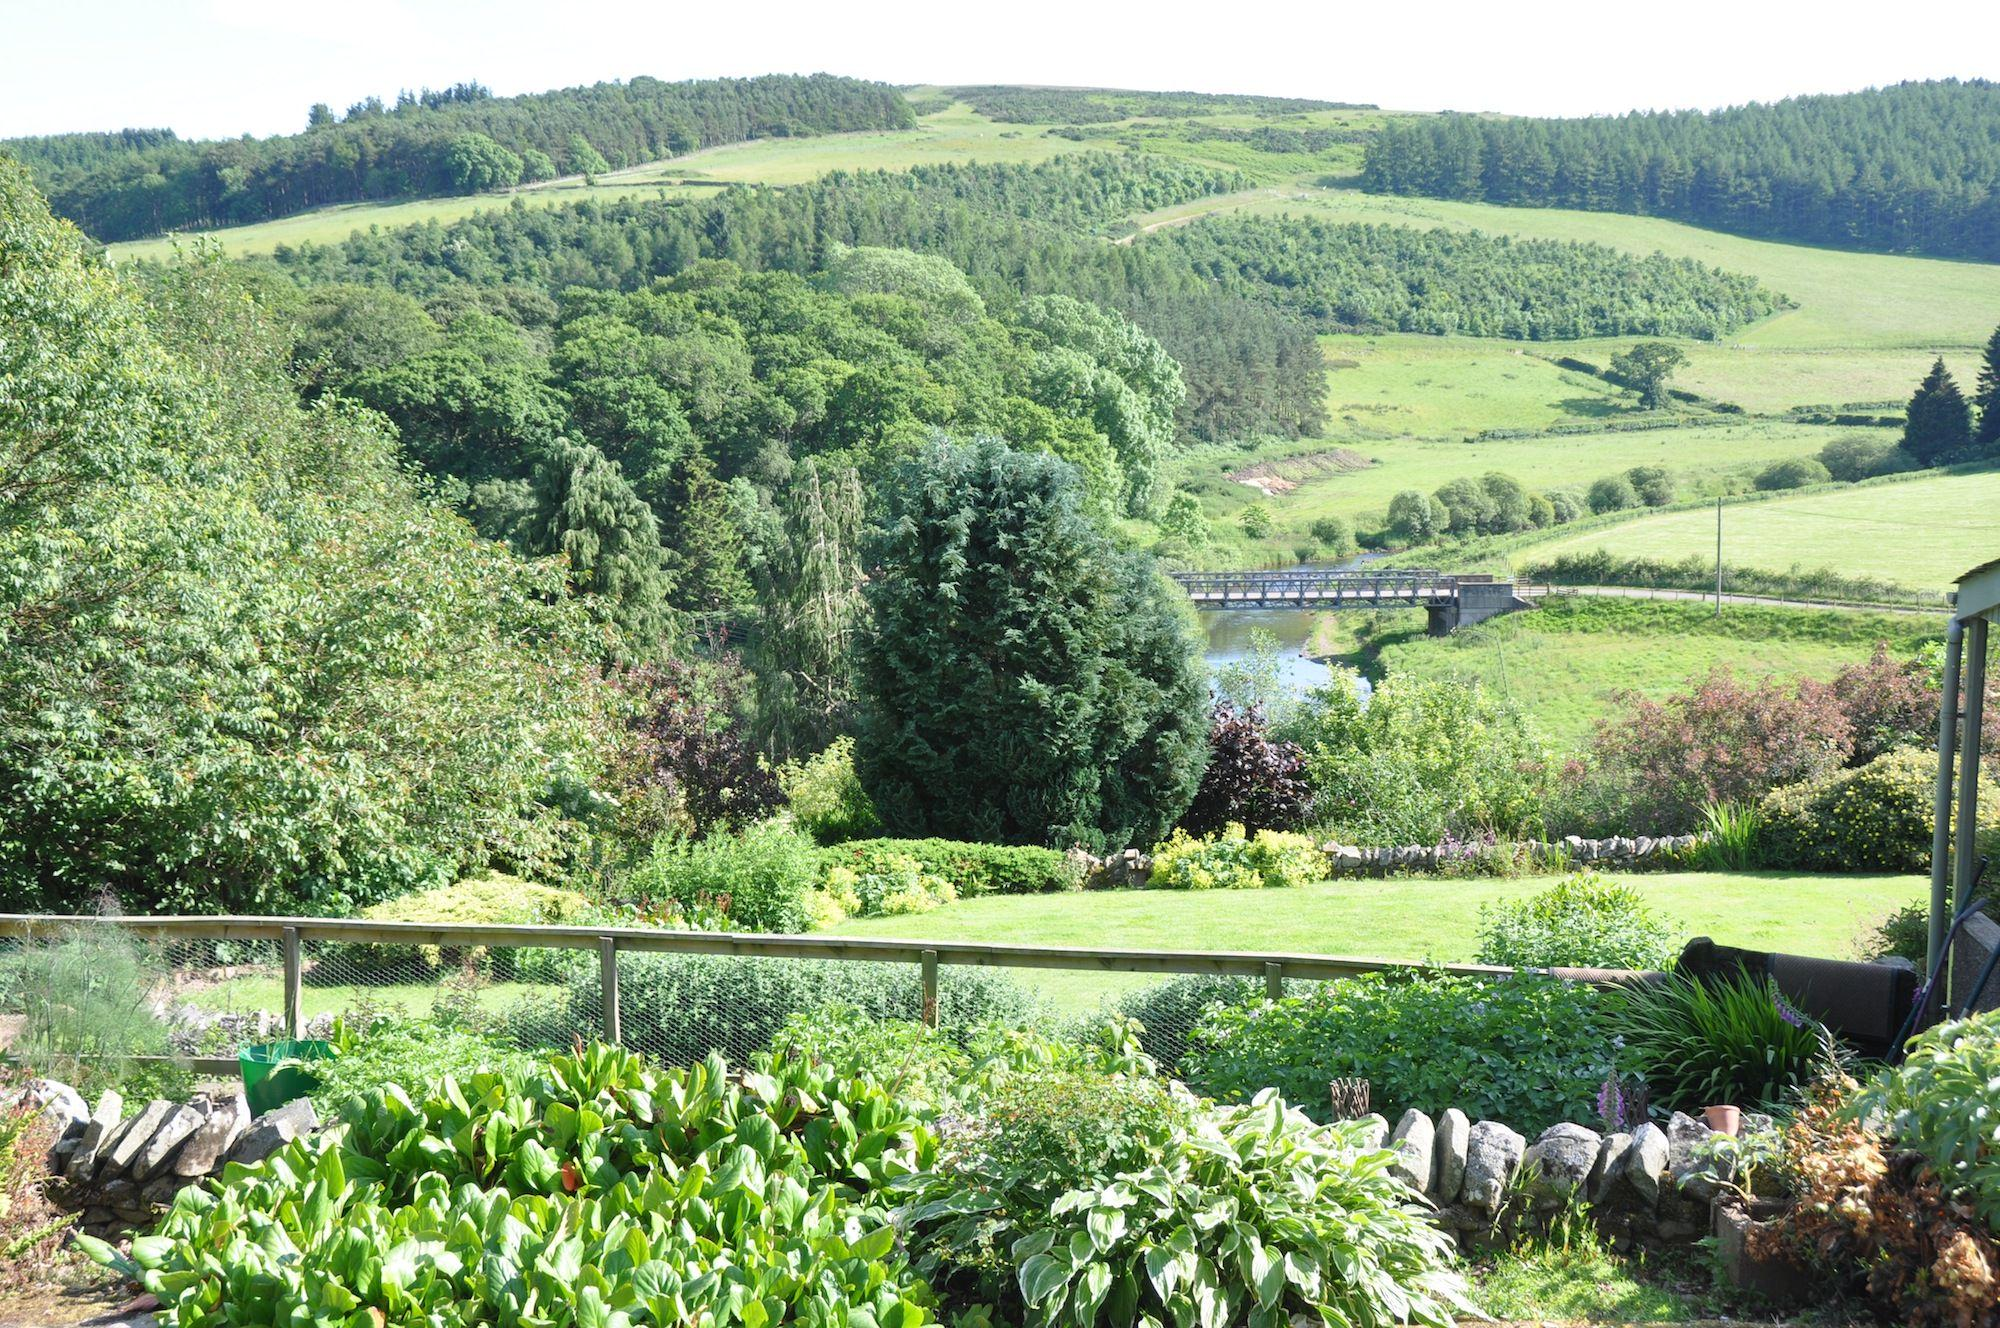 Hotels, Cottages, B&Bs & Glamping in Southern Scotland